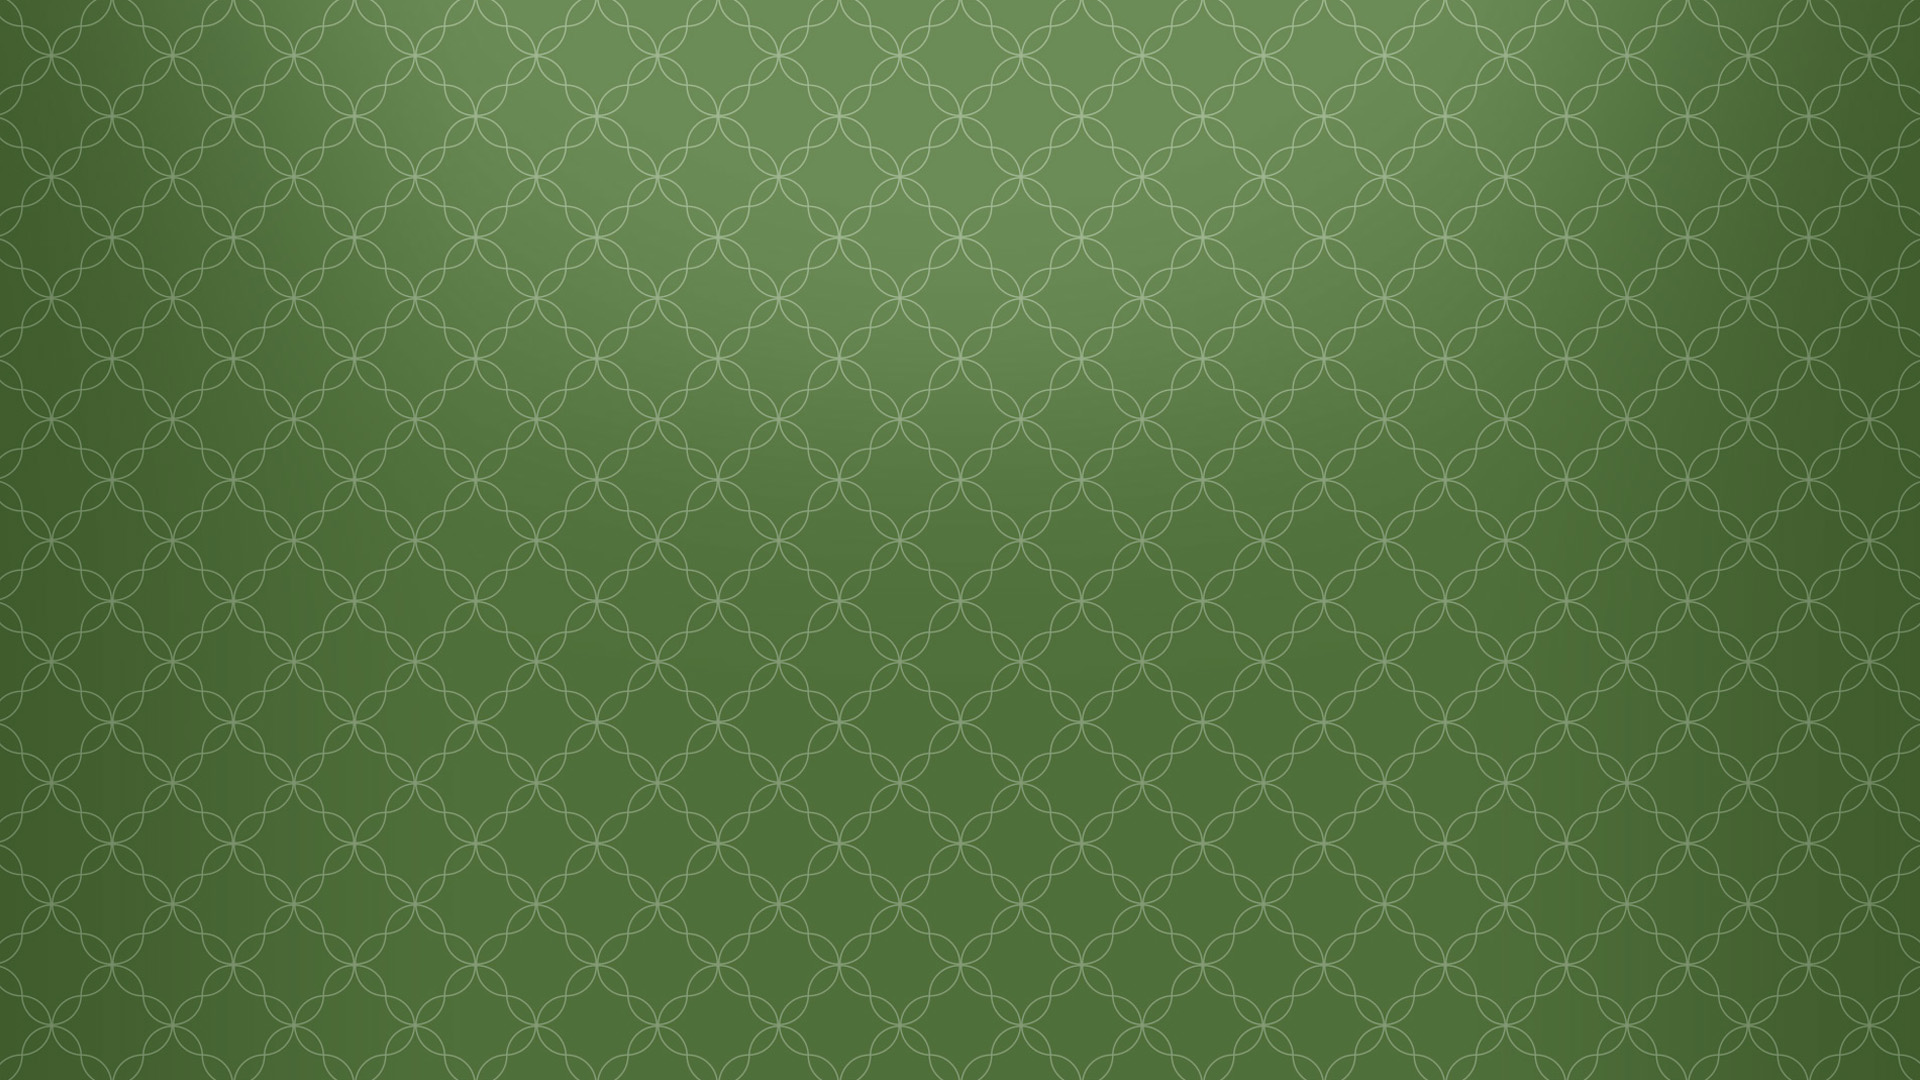 Download Olive Green Textured Wallpaper Gallery 1920x1080